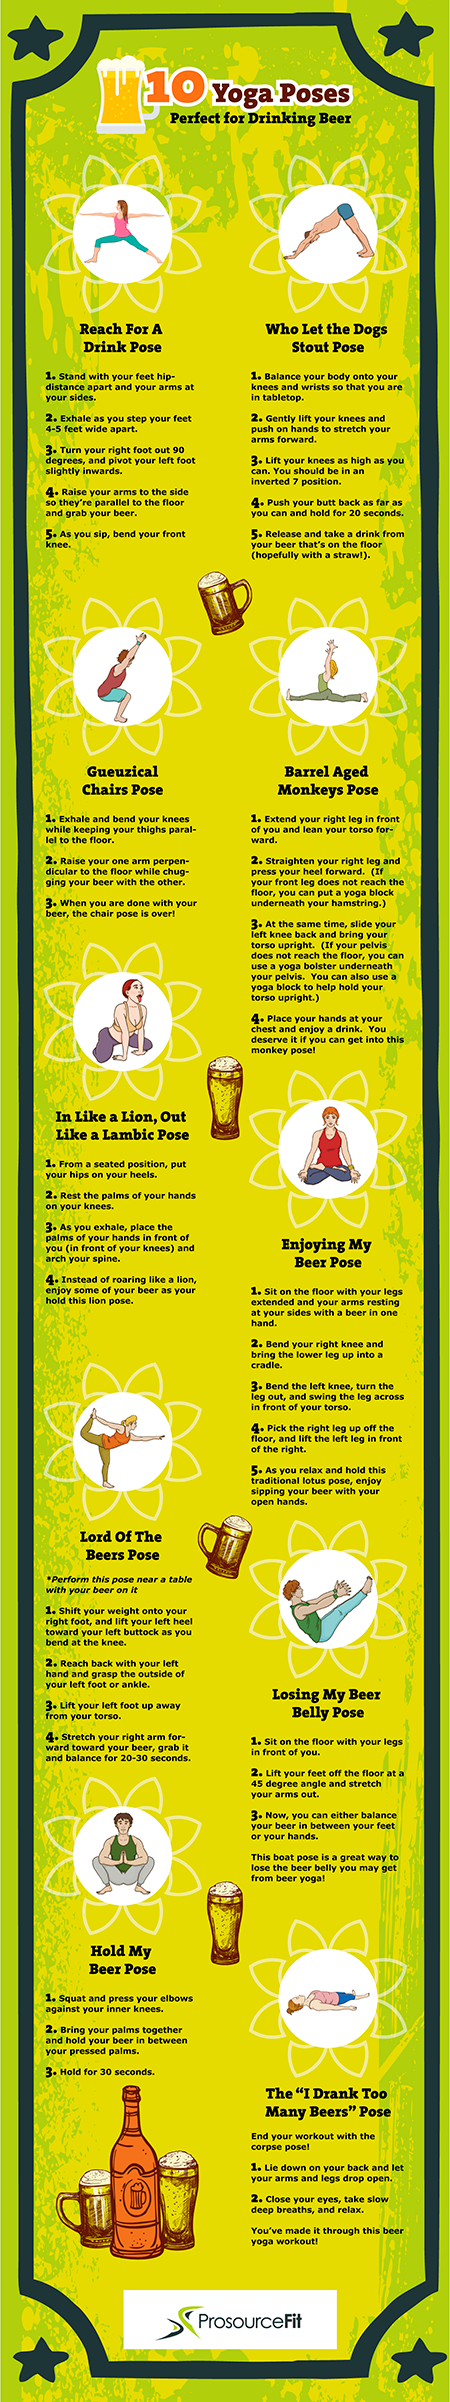 Yoga Poses You Can Do While Holding a Beer [Infographic]